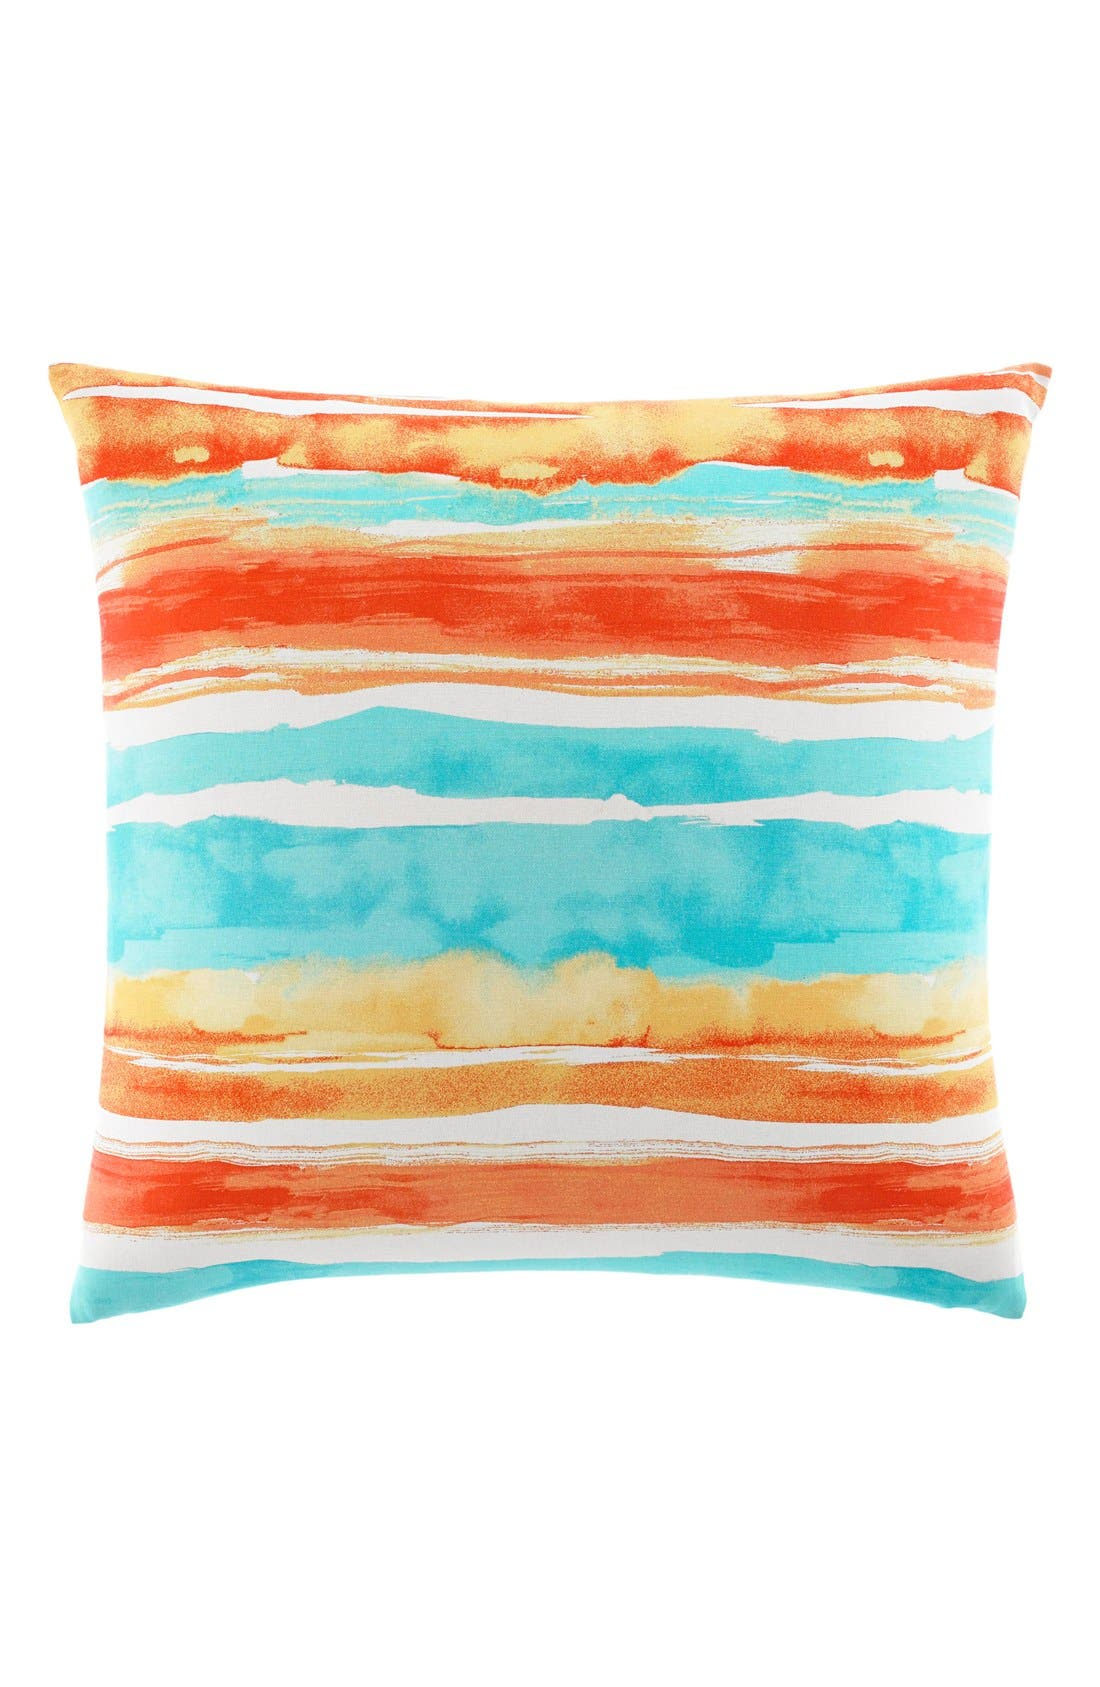 Alternate Image 1 Selected - Tommy Bahama 'Watercolor Stripe' Pillow